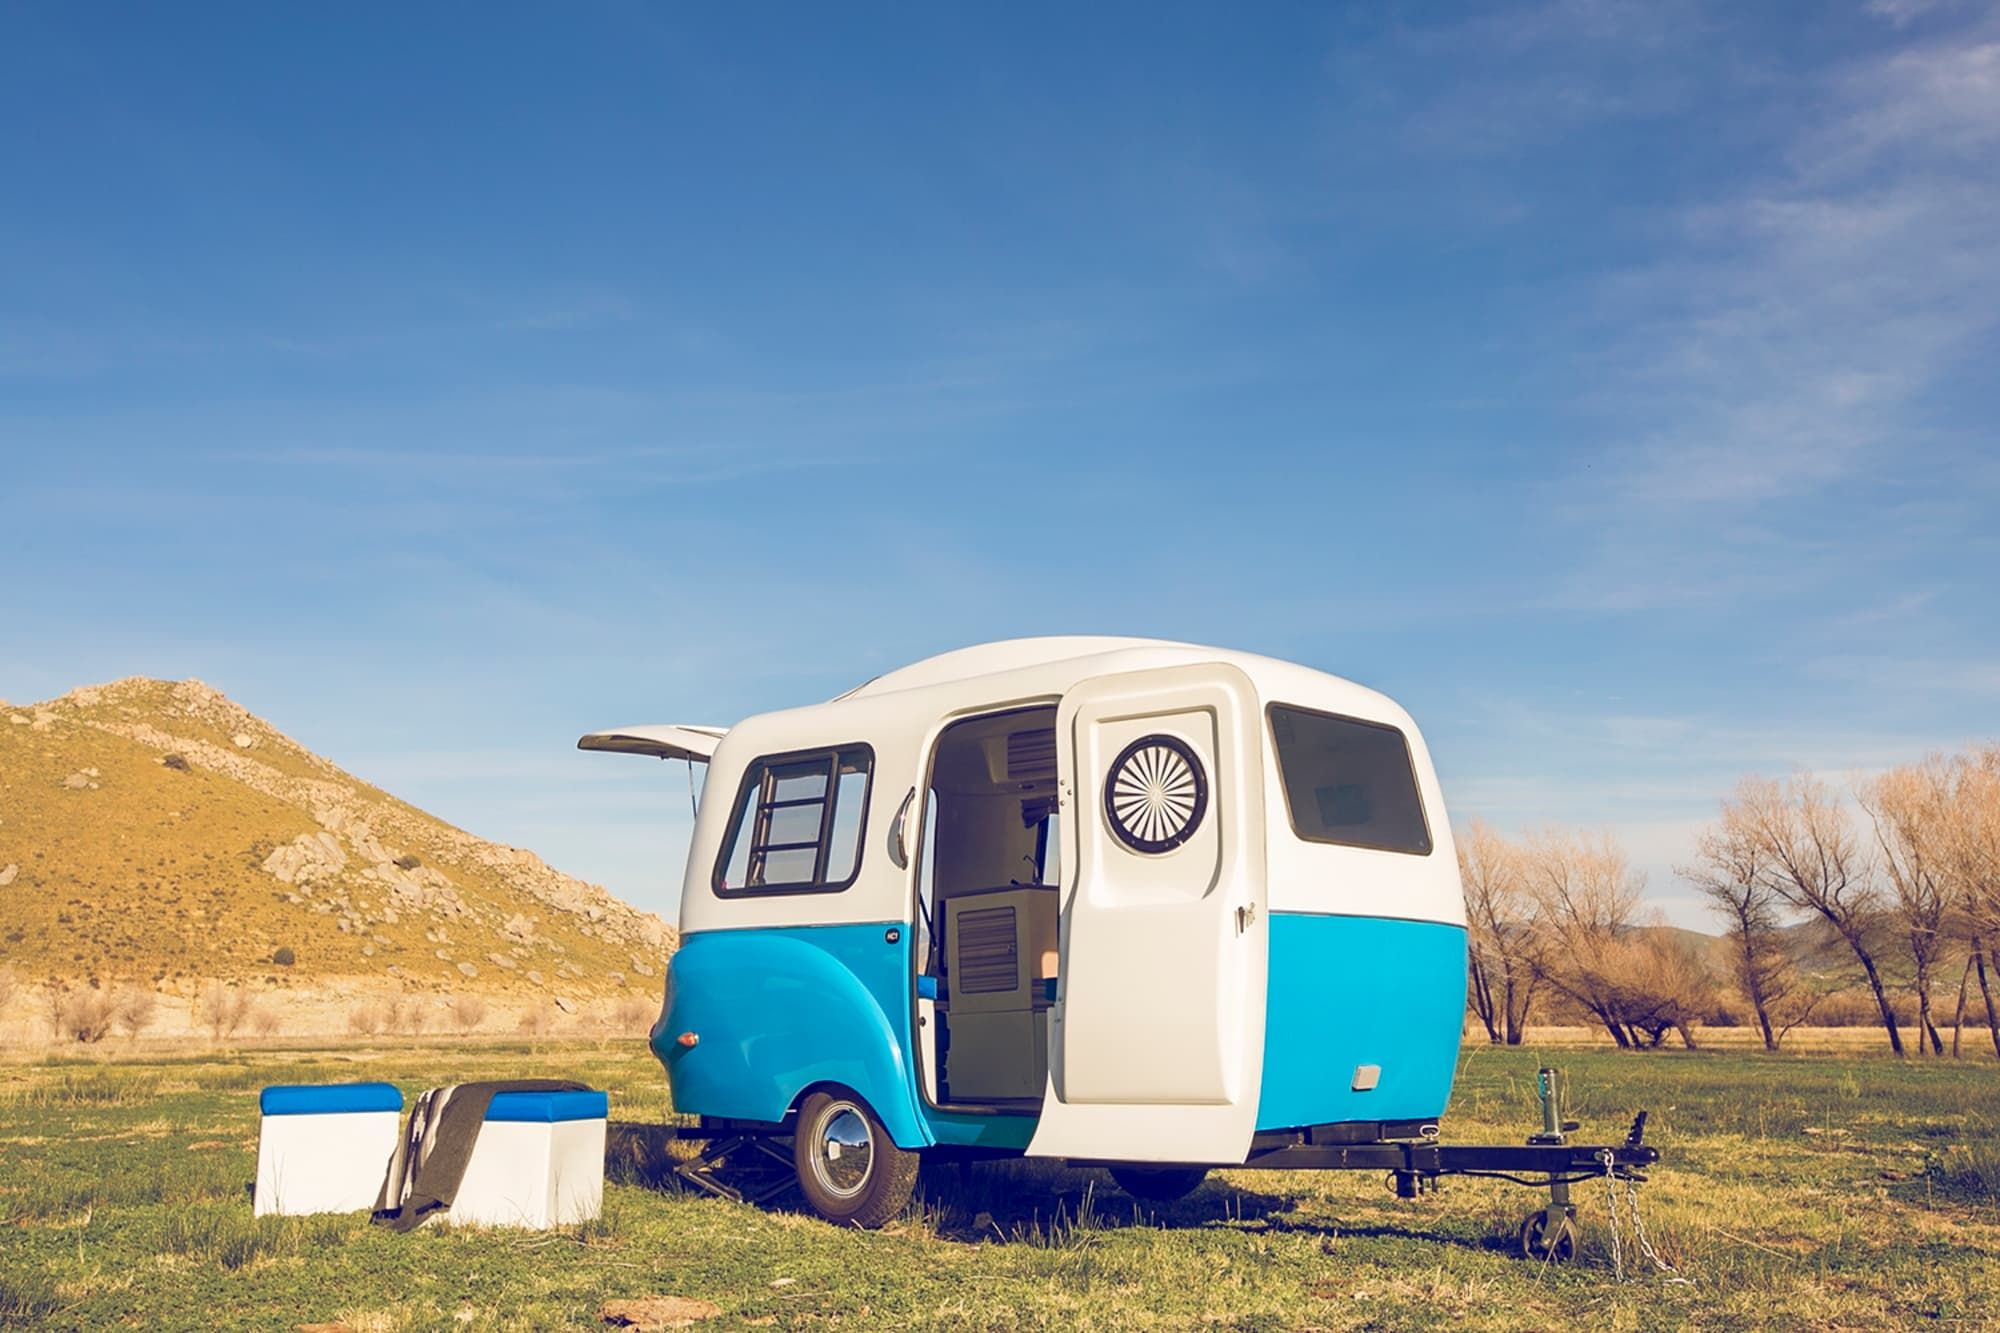 5 Best Travel Trailers Under 4000 Pounds (Top Lightweight Trailers)